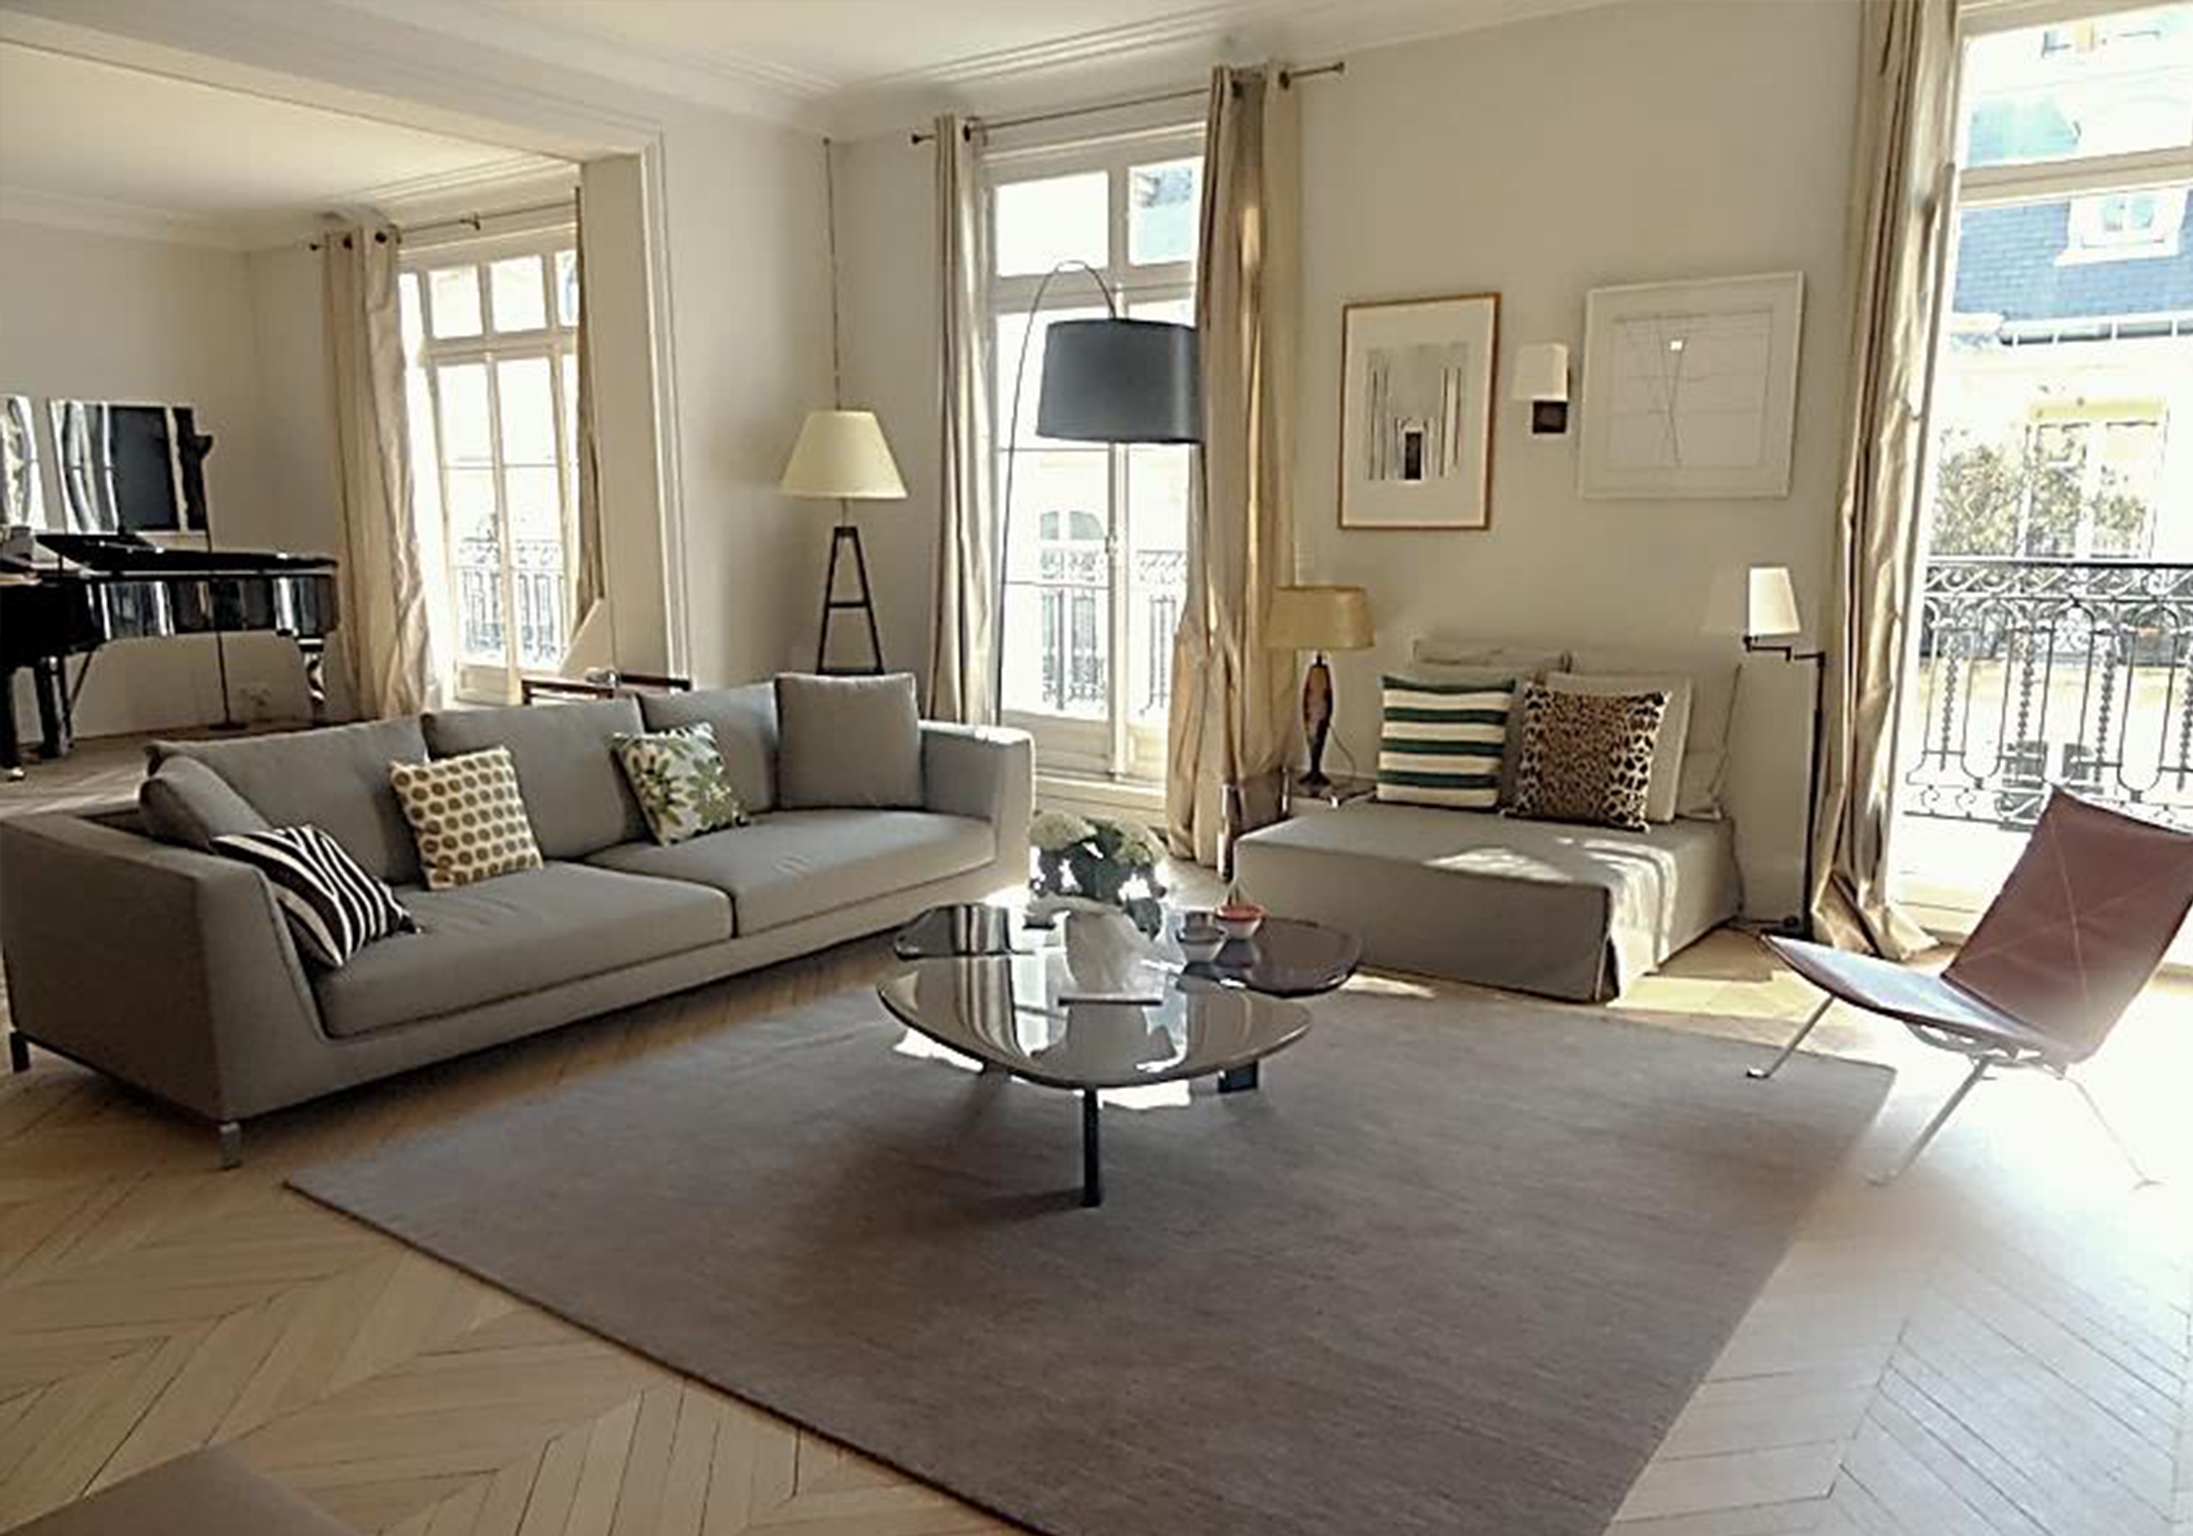 Interieur singulier appartement paris 16 for Interieur et deco